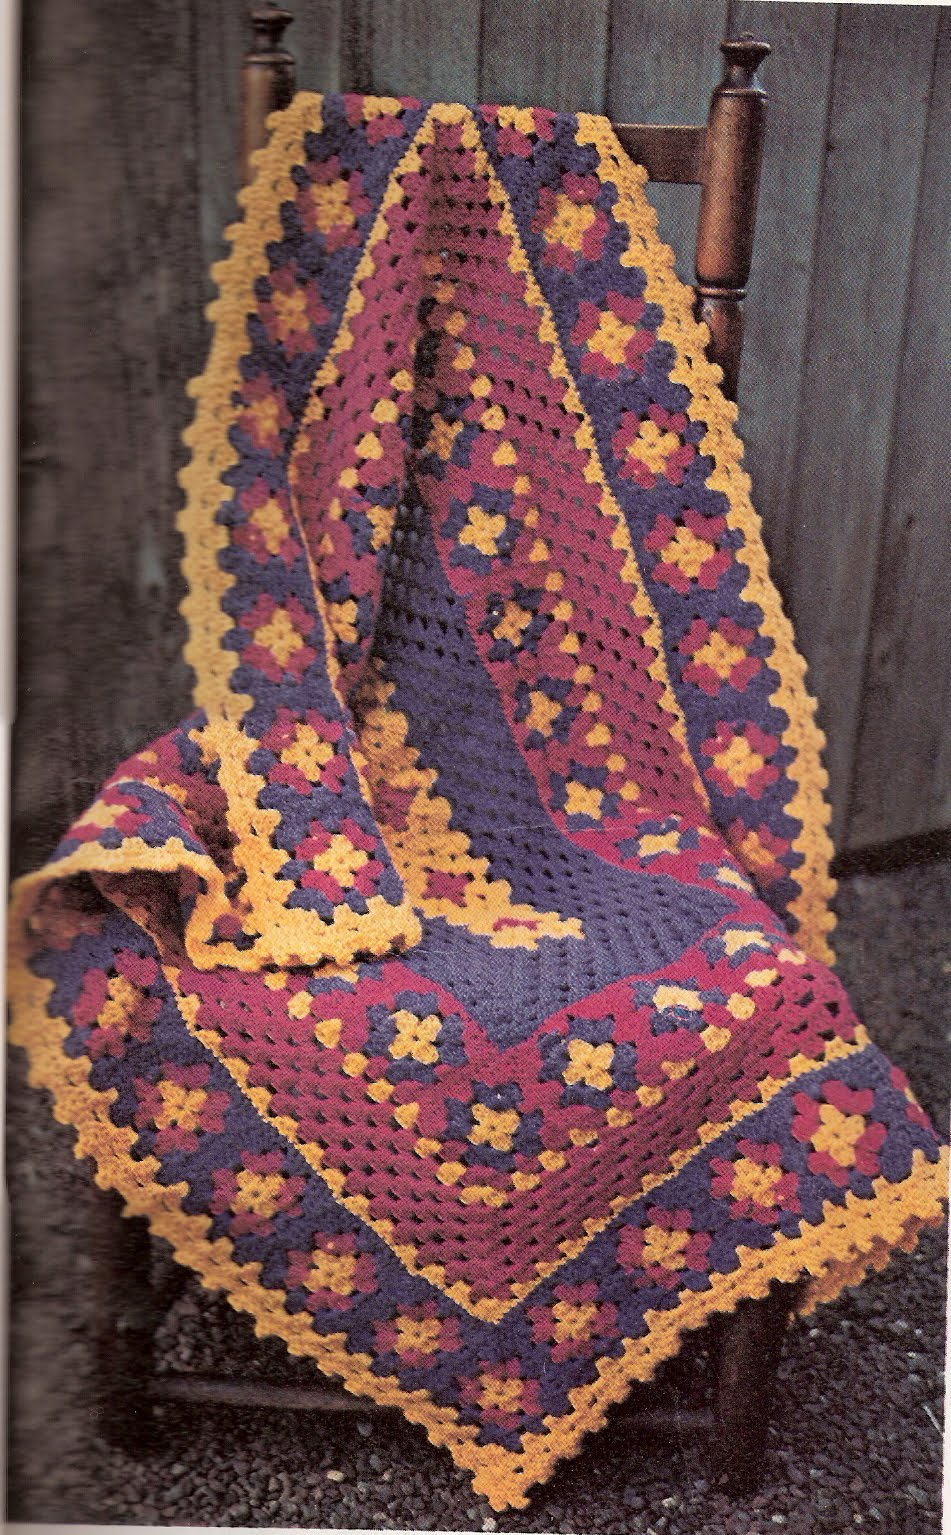 Crochet Patterns Afghan Blanket : crochet blanket crochet blanket pattern crochet blanket patterns ...